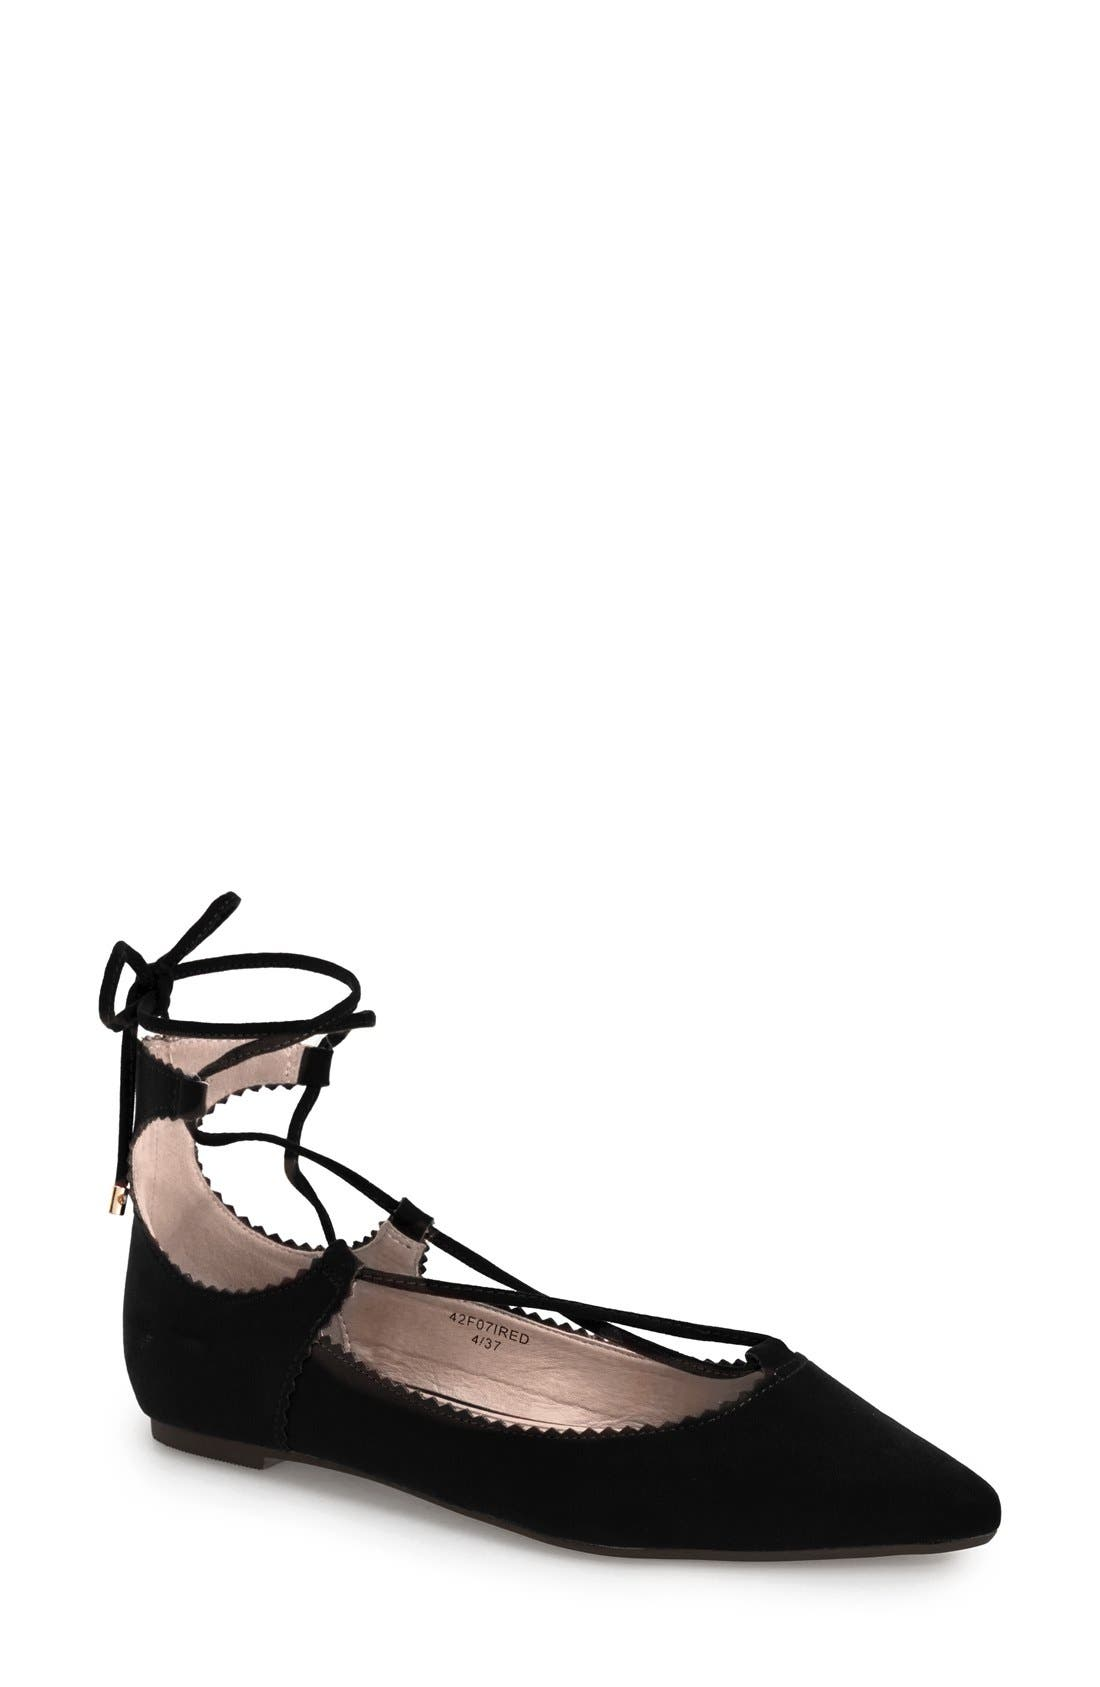 Main Image - Topshop 'Finest Shillie' Lace-Up Pointy Toe Flat (Women)